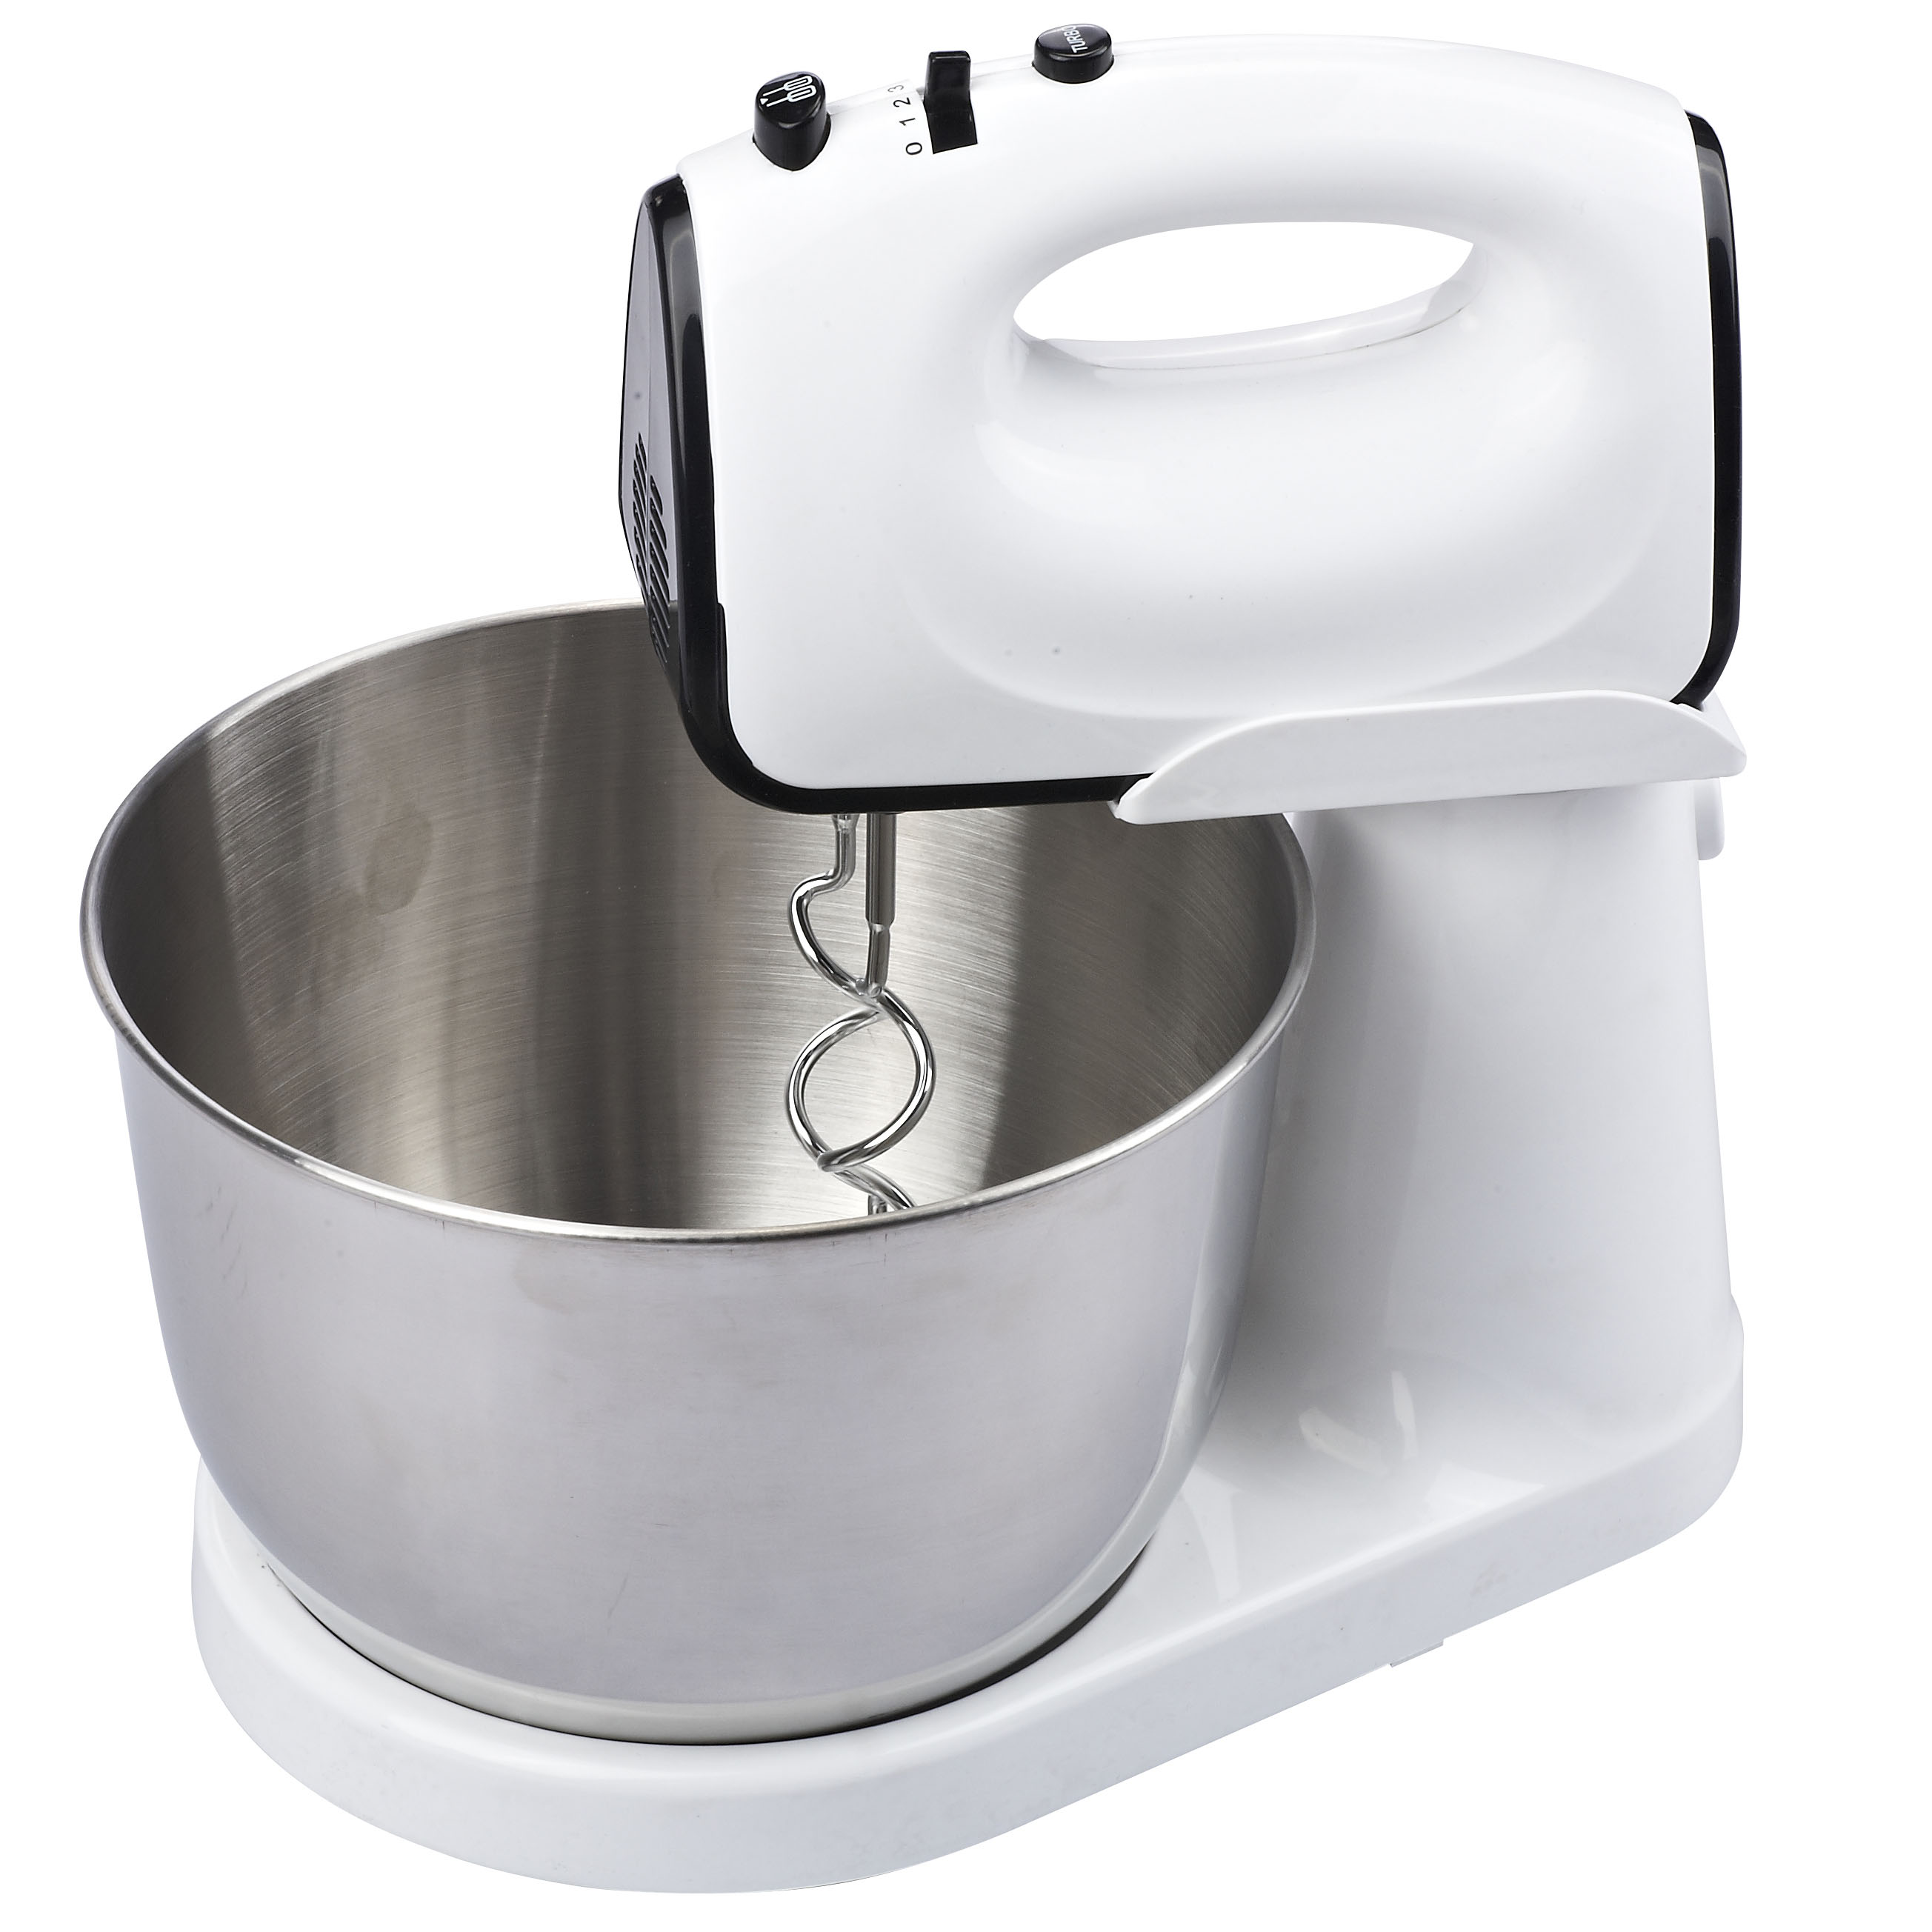 HM-1541 Hand Mixer with bowl